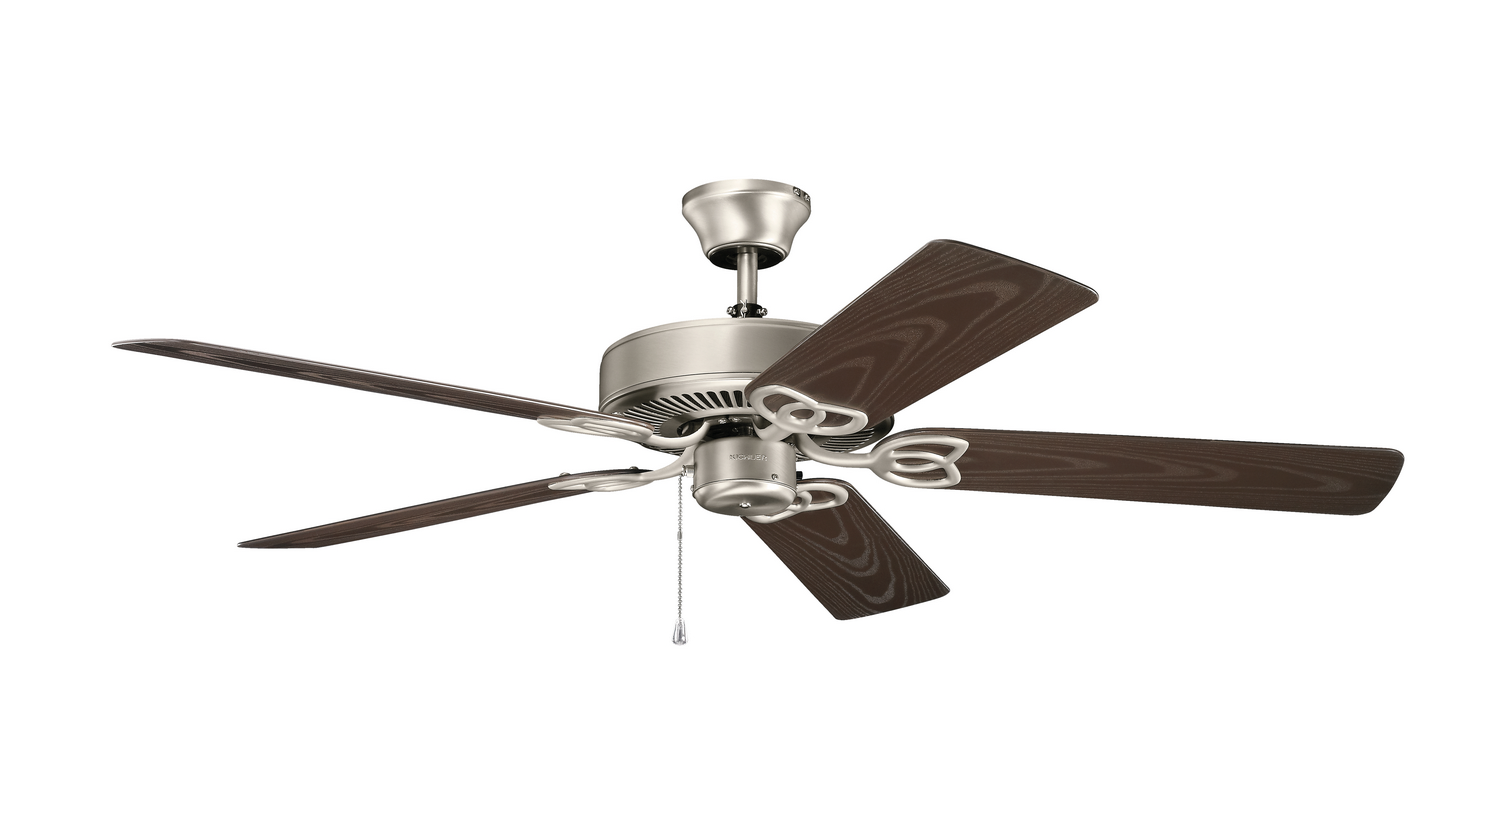 52 inchCeiling Fan from the Basics collection by Kichler 401NI